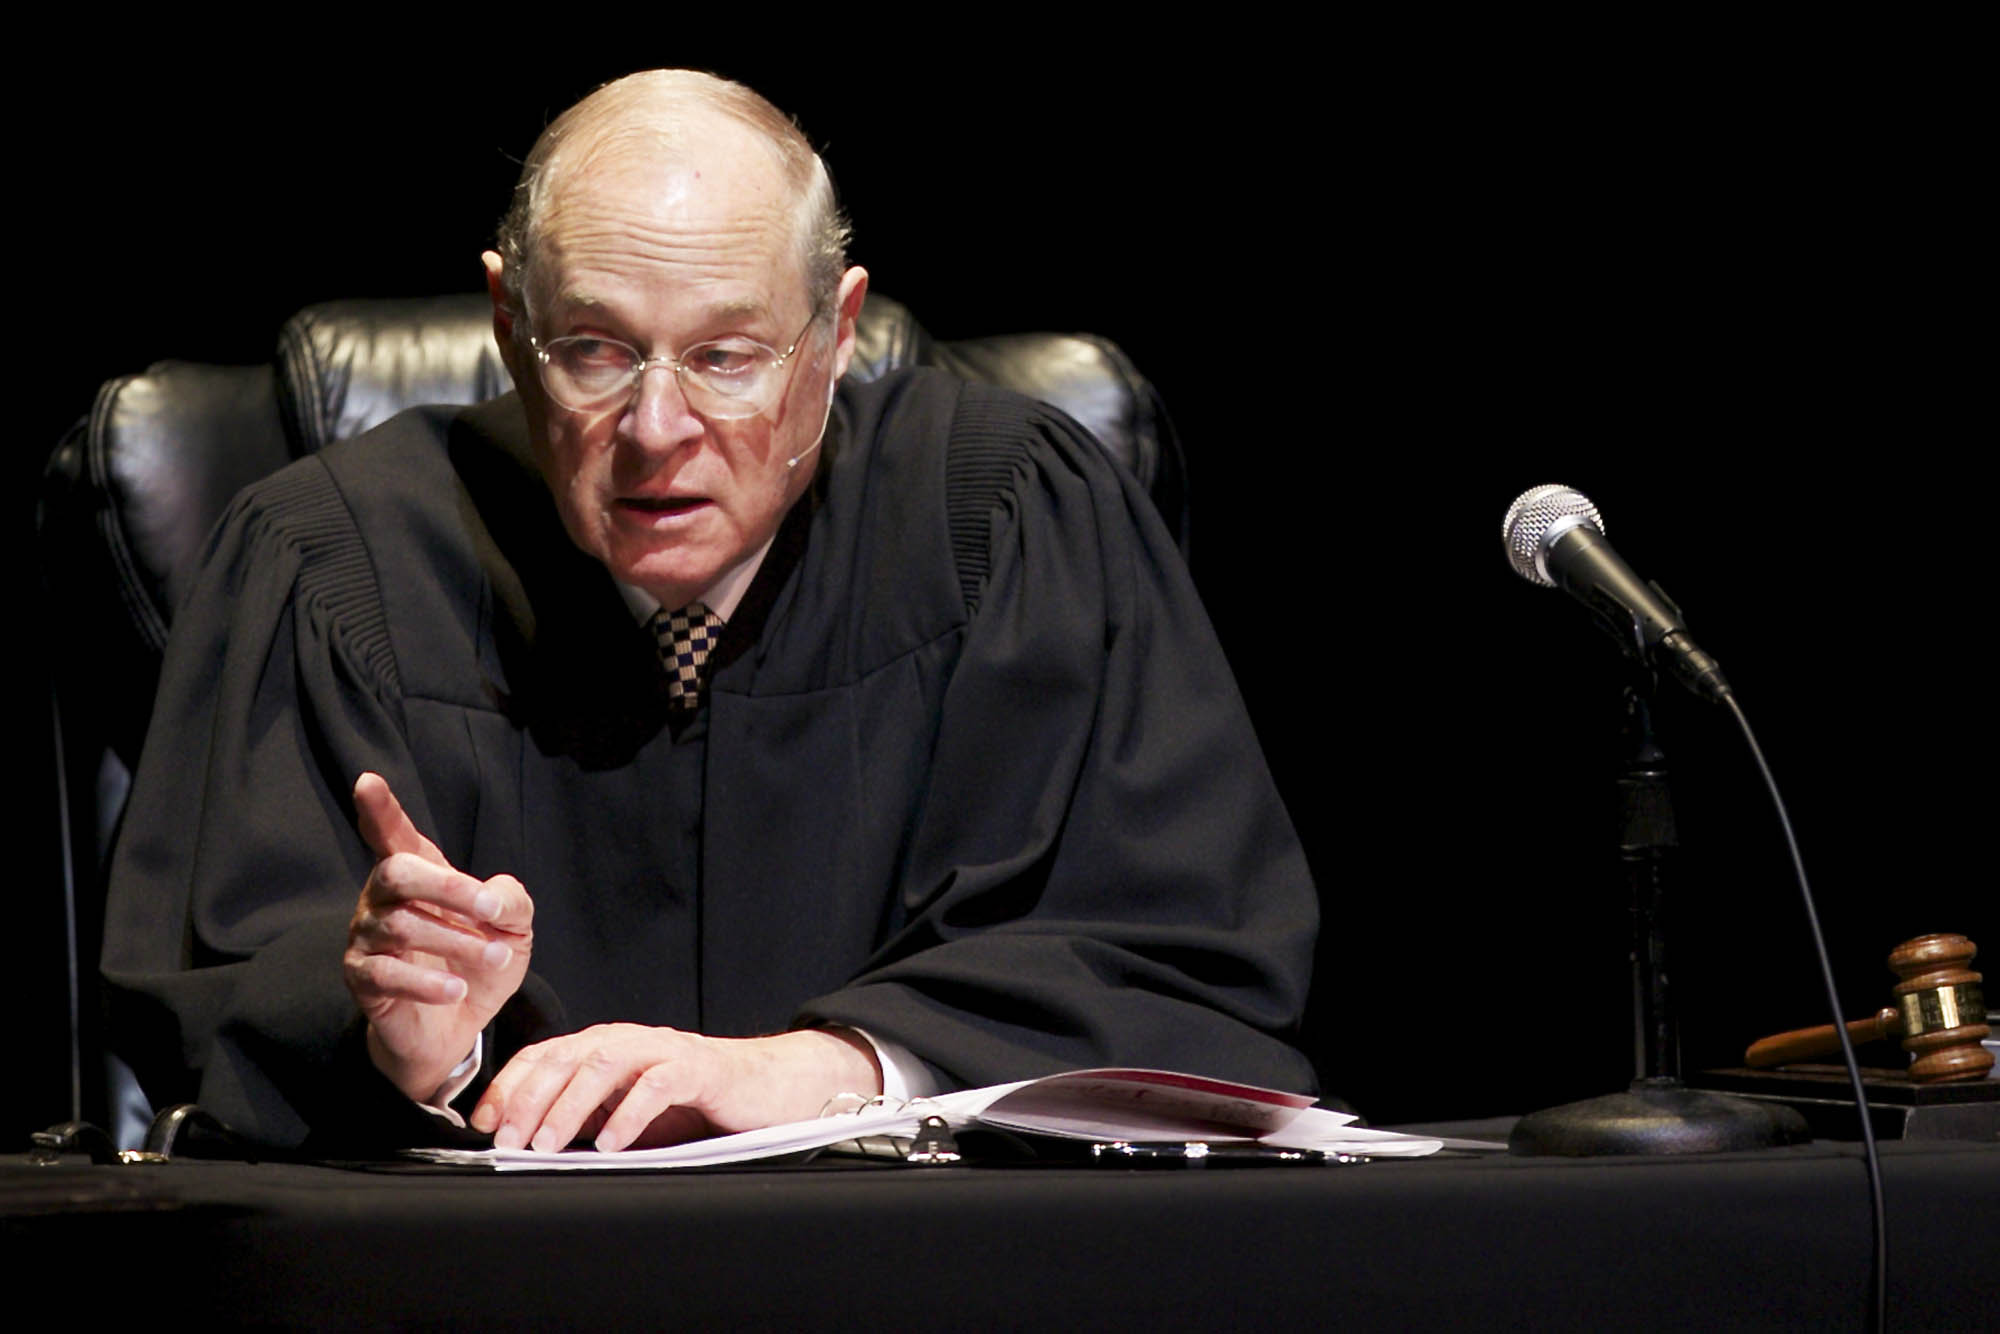 "FILE - In this Jan. 31, 2011, file photo U.S. Supreme Court Justice Anthony Kennedy presides over a representation of ""The Trial of Hamlet"" at the Shakespeare Center of Los Angeles. During Supreme Courts arguments last week over the constitutionality of the health care law Justice Kennedy mused that Congress could have created a Medicare-style program for the uninsured, run exclusively by the government without the involvement of private insurers.  (AP Photo/Damian Dovarganes, File)"